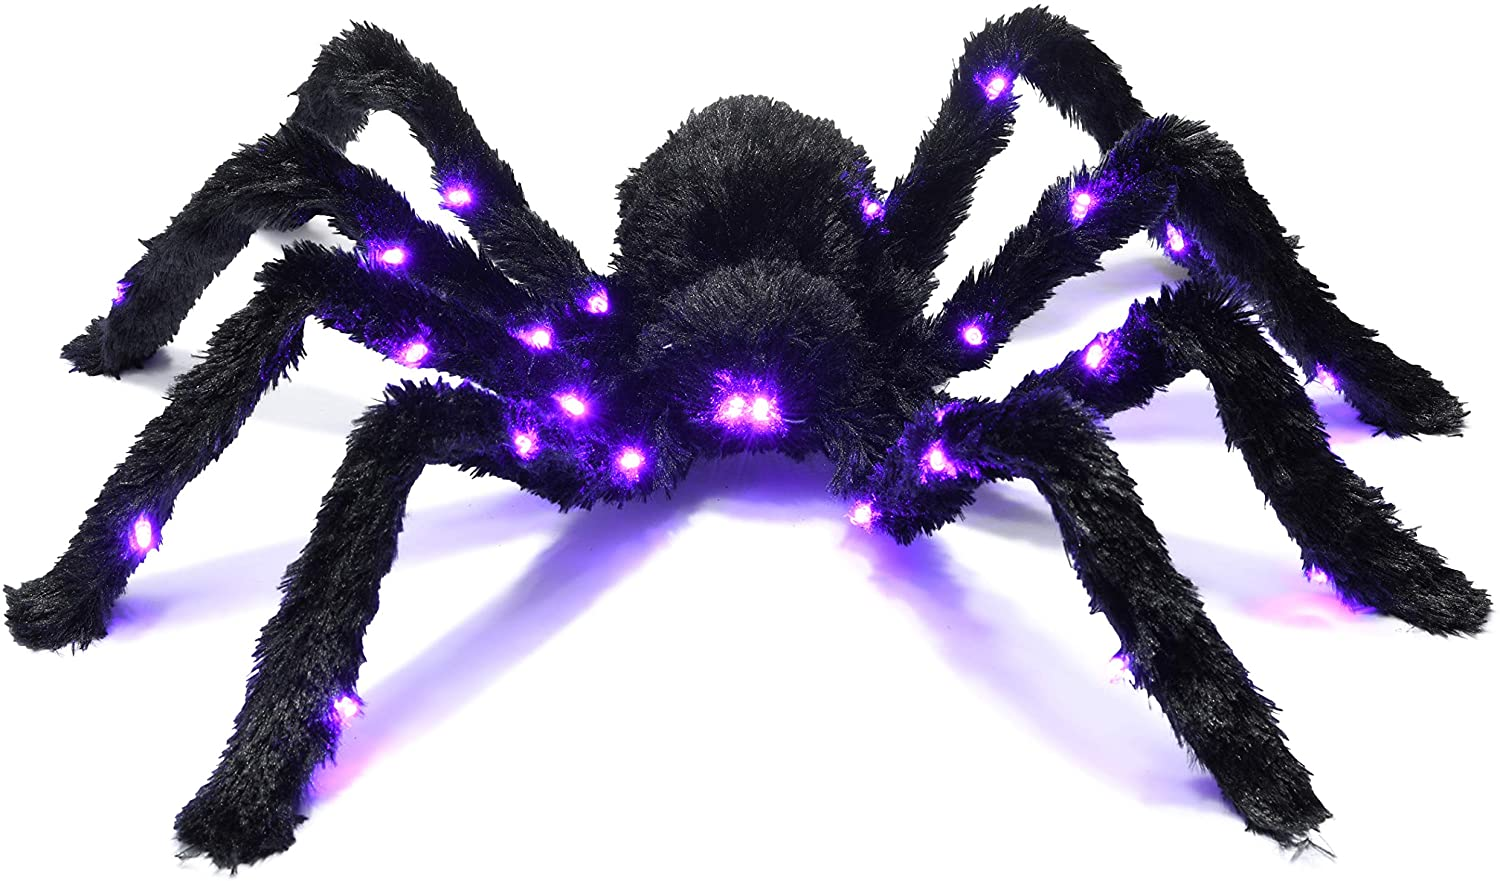 Prextex Light up Black Hairy Spider Tarantula for Halloween Haunt D cor Best Halloween Decoration